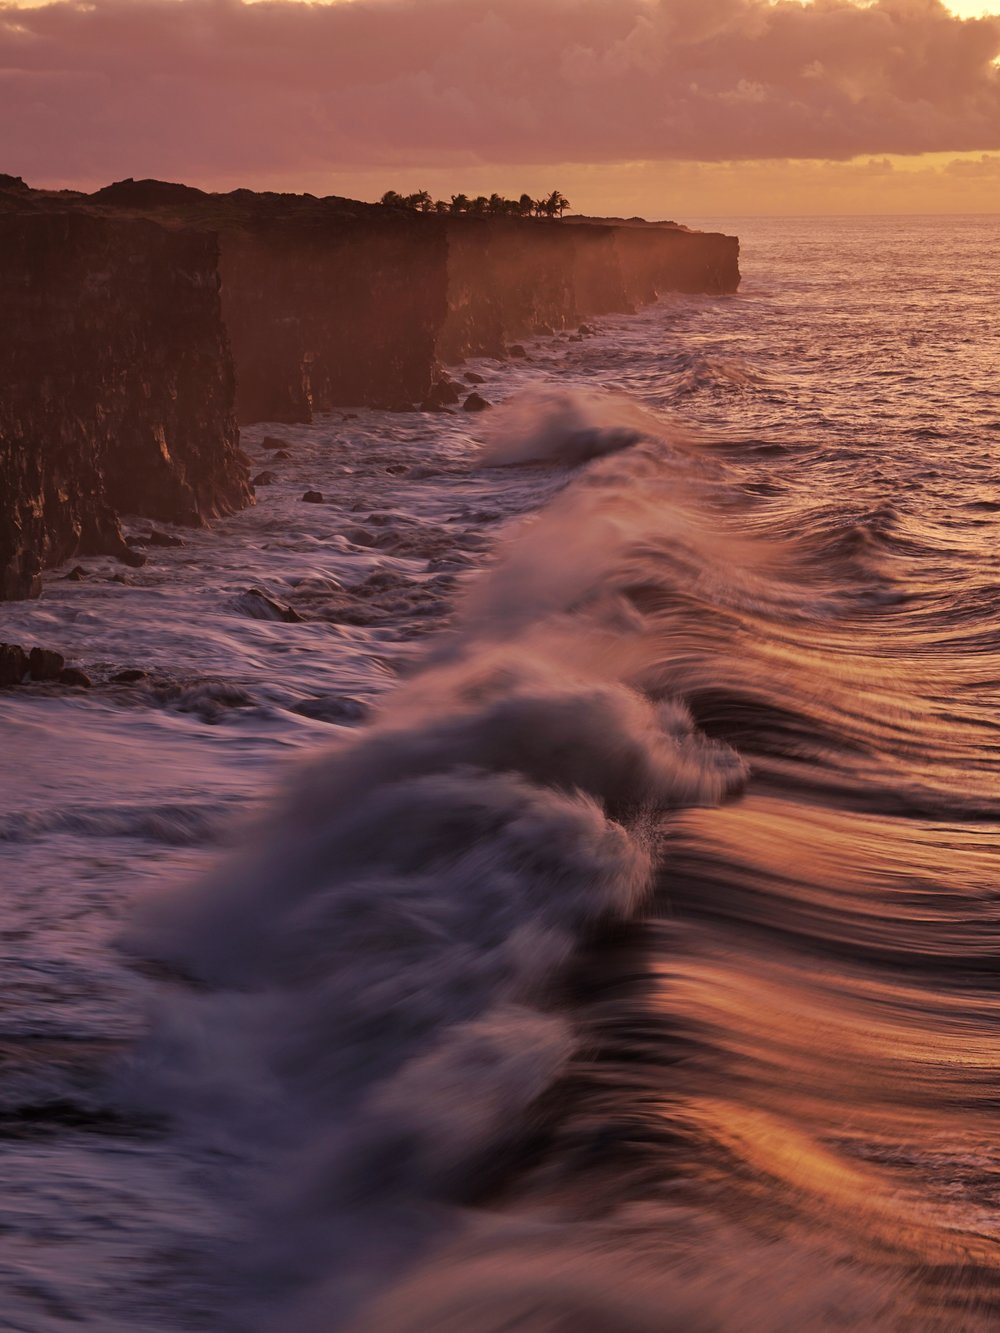 Waves in Crashing in Hawai'i